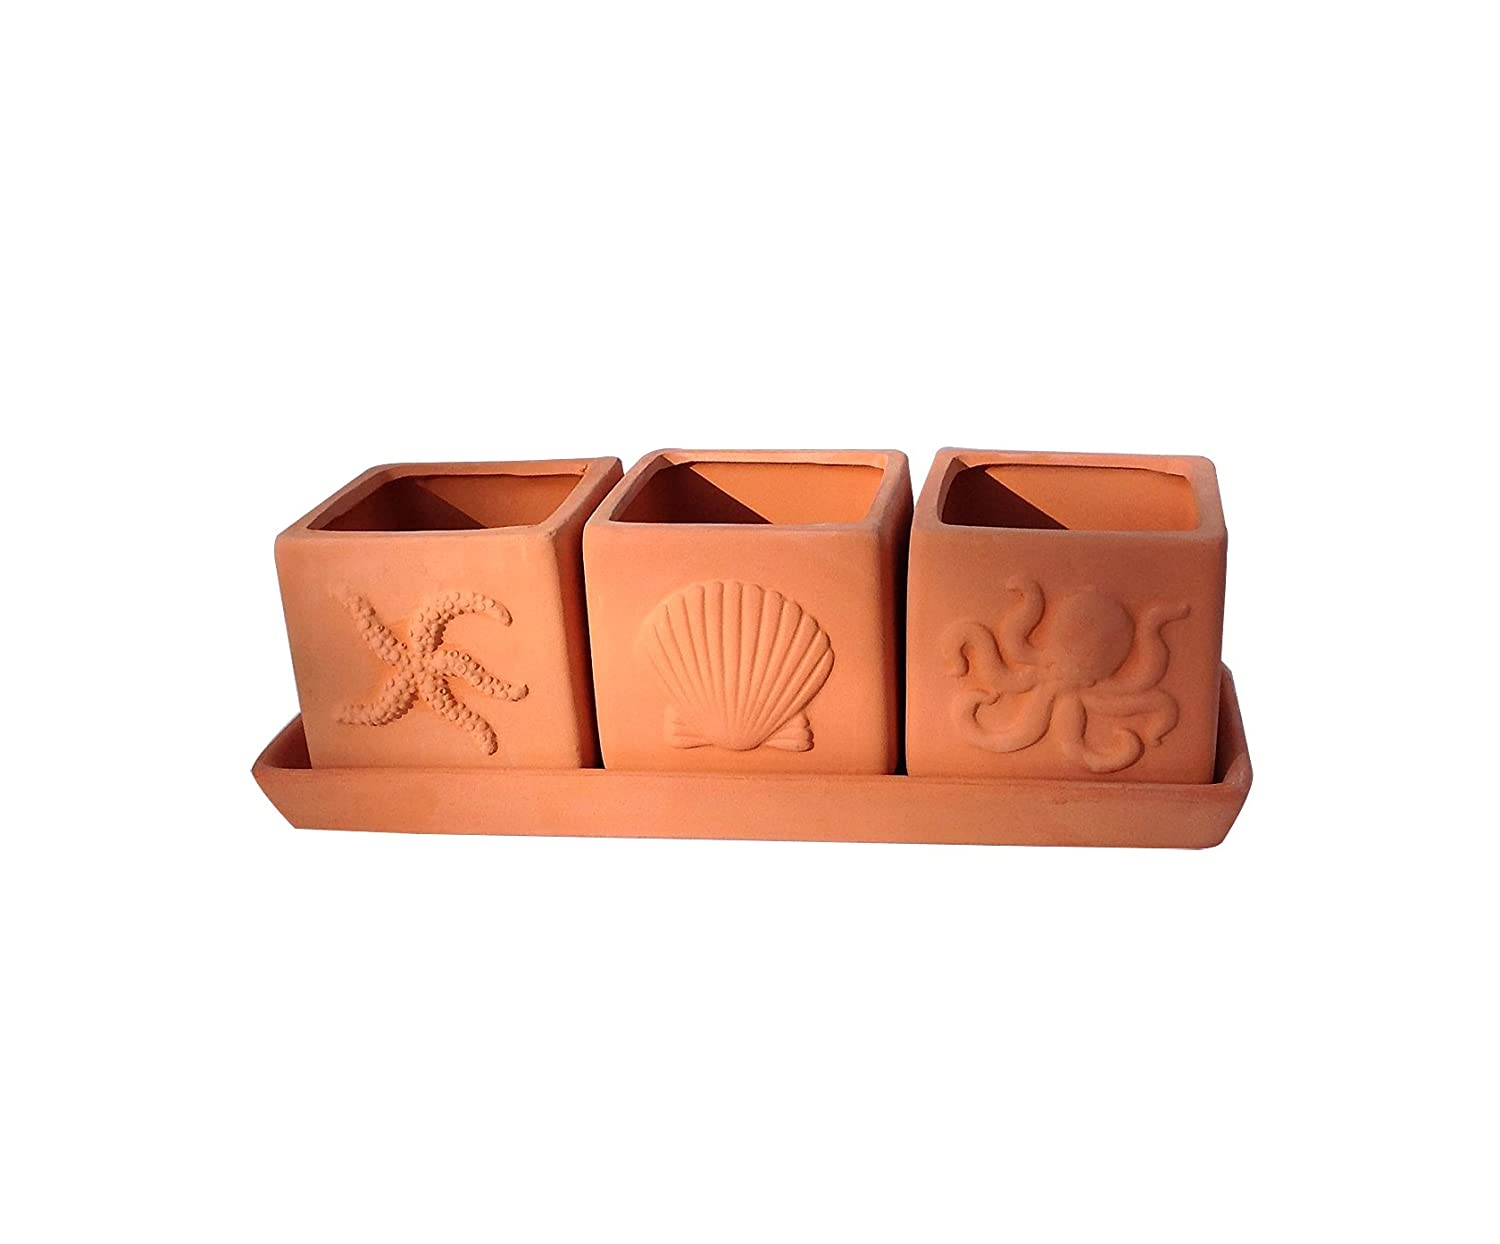 Terracotta Set of 3 Small Square Seascape Embossed Earthenware Planters or Herb Square Pots with Tray